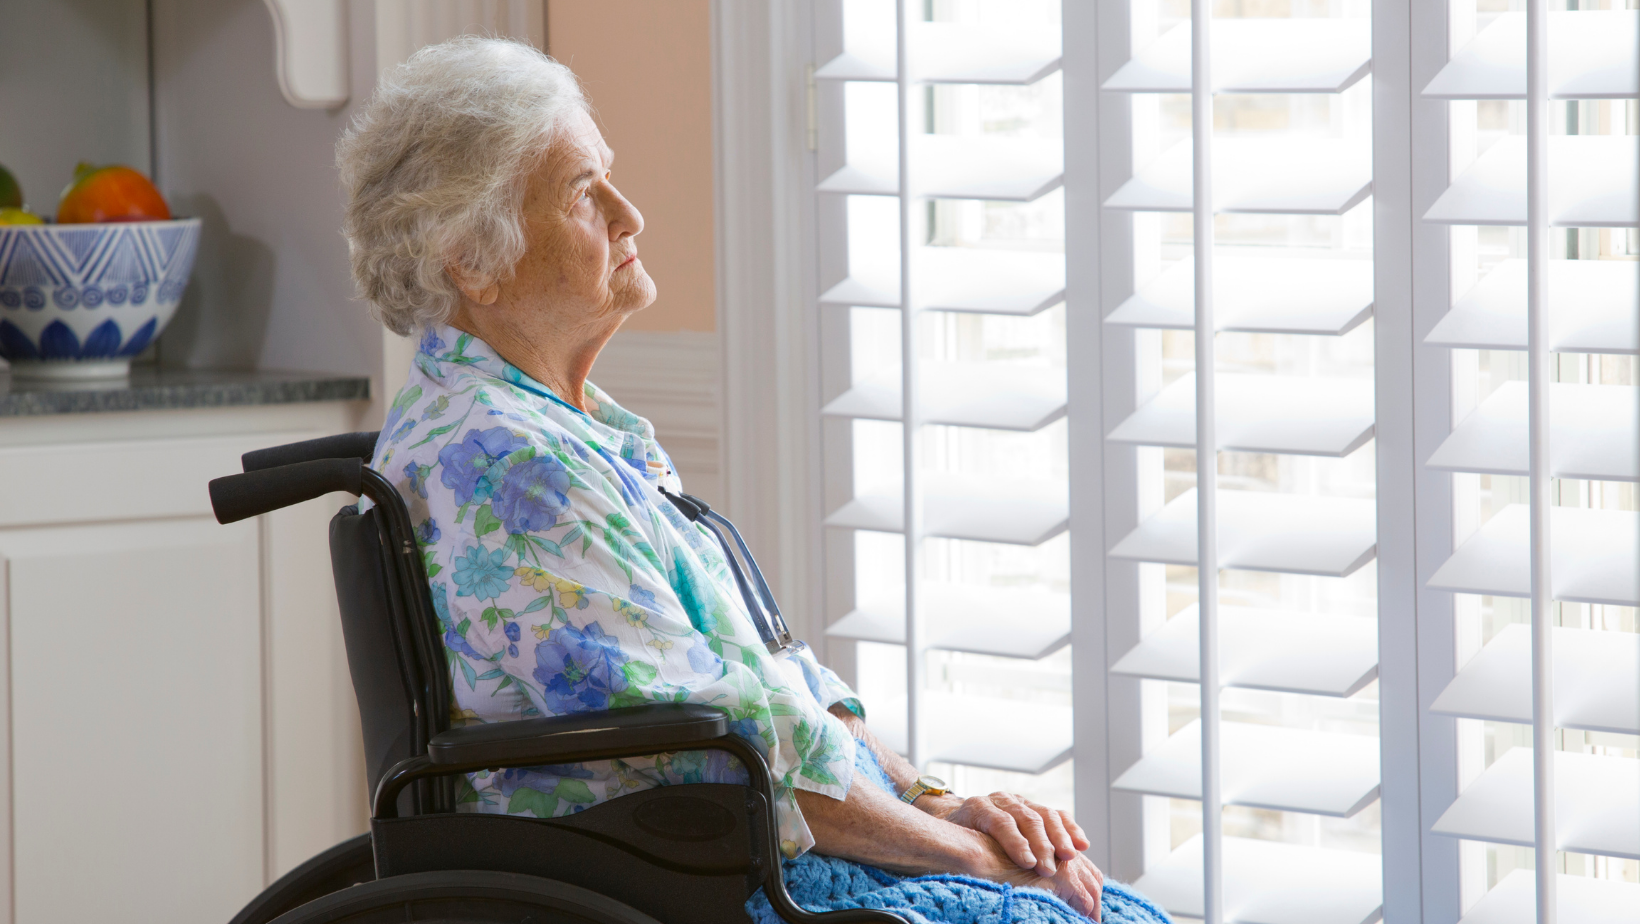 an older woman in a wheelchair, sitting in her kitchen, looking out the window